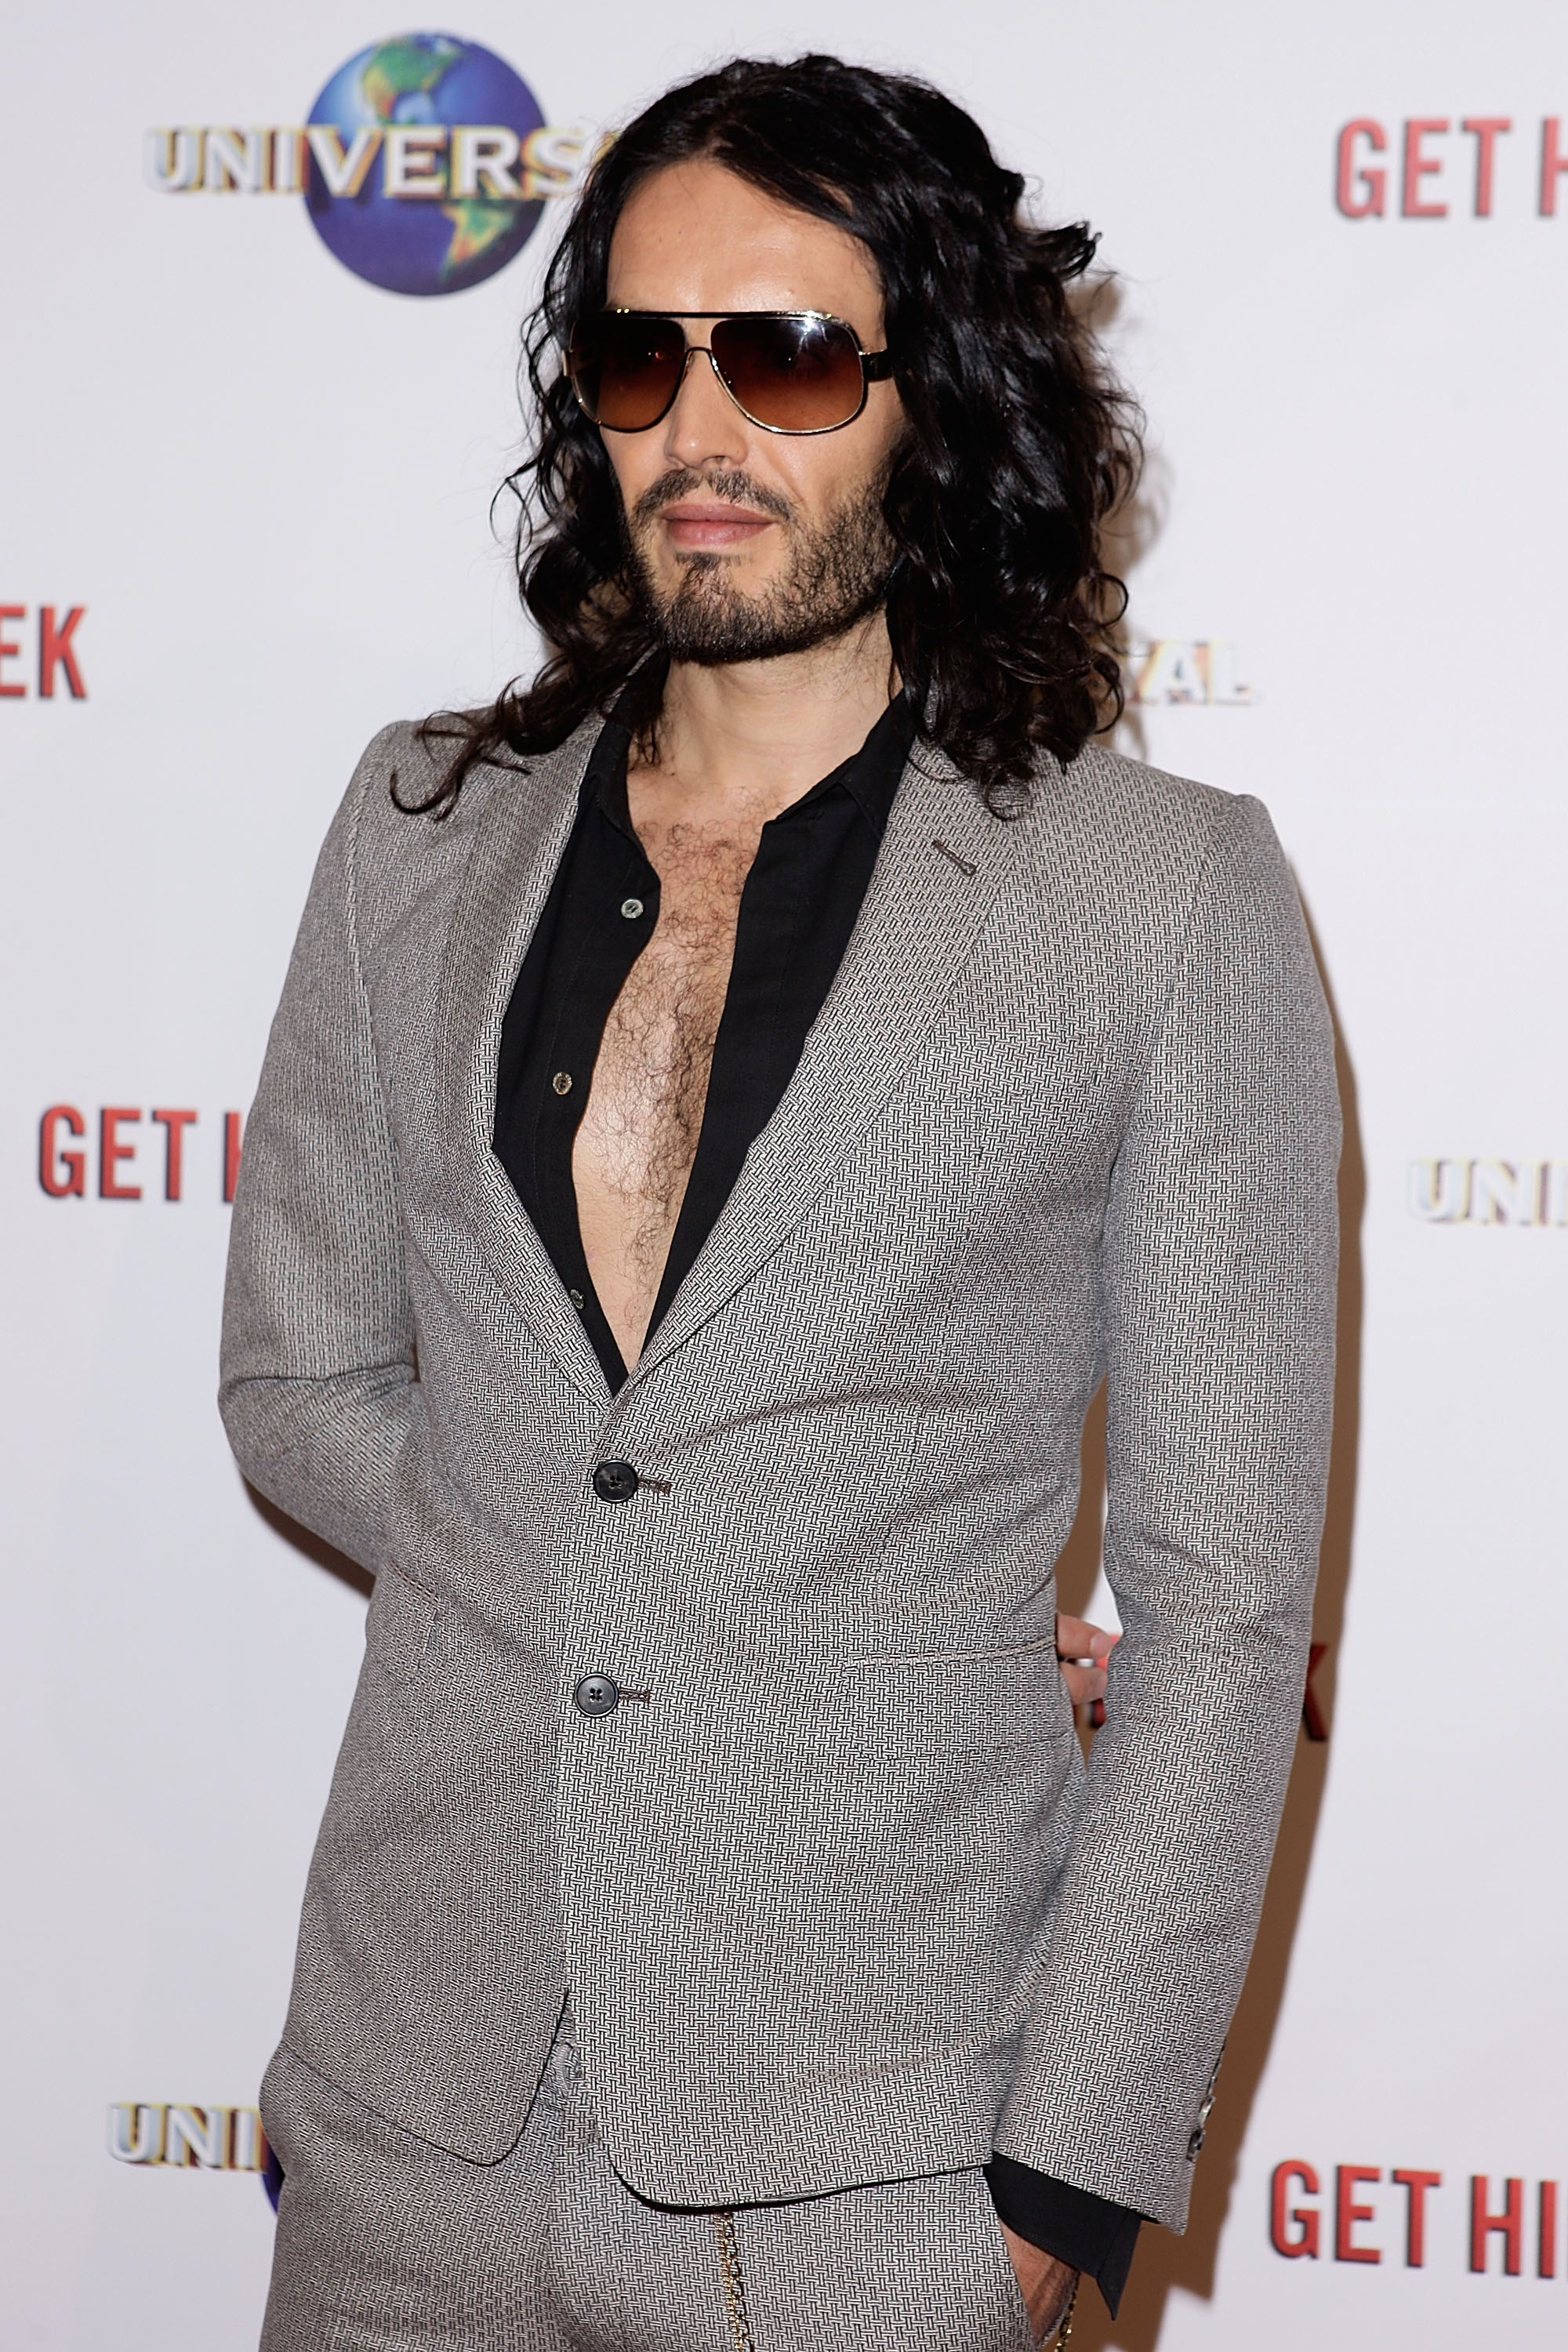 Russell Brand On Life With Katy Perry: 'I Stay Out Of